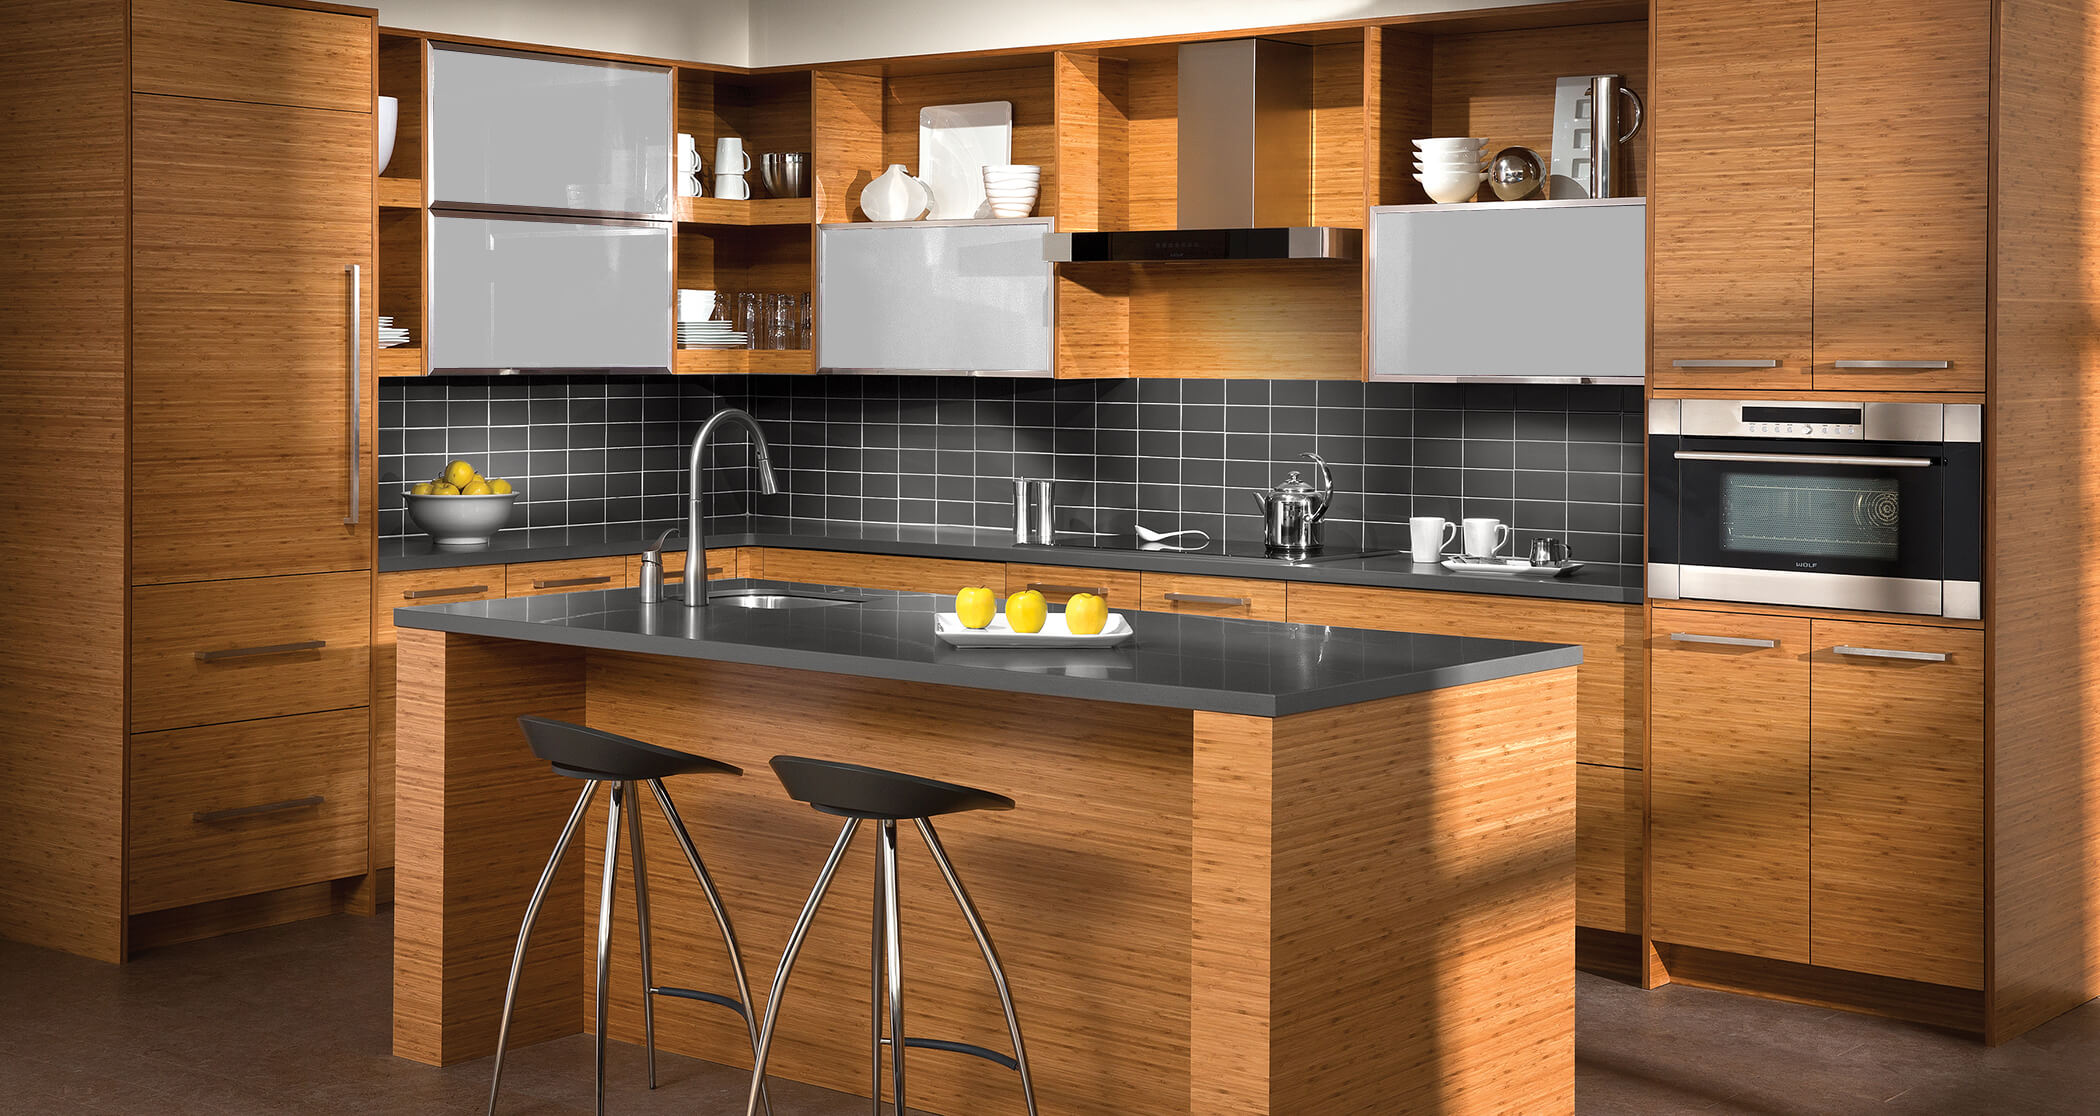 A modern kitchen with bamboo cabinets with a horizontal grain pattern.